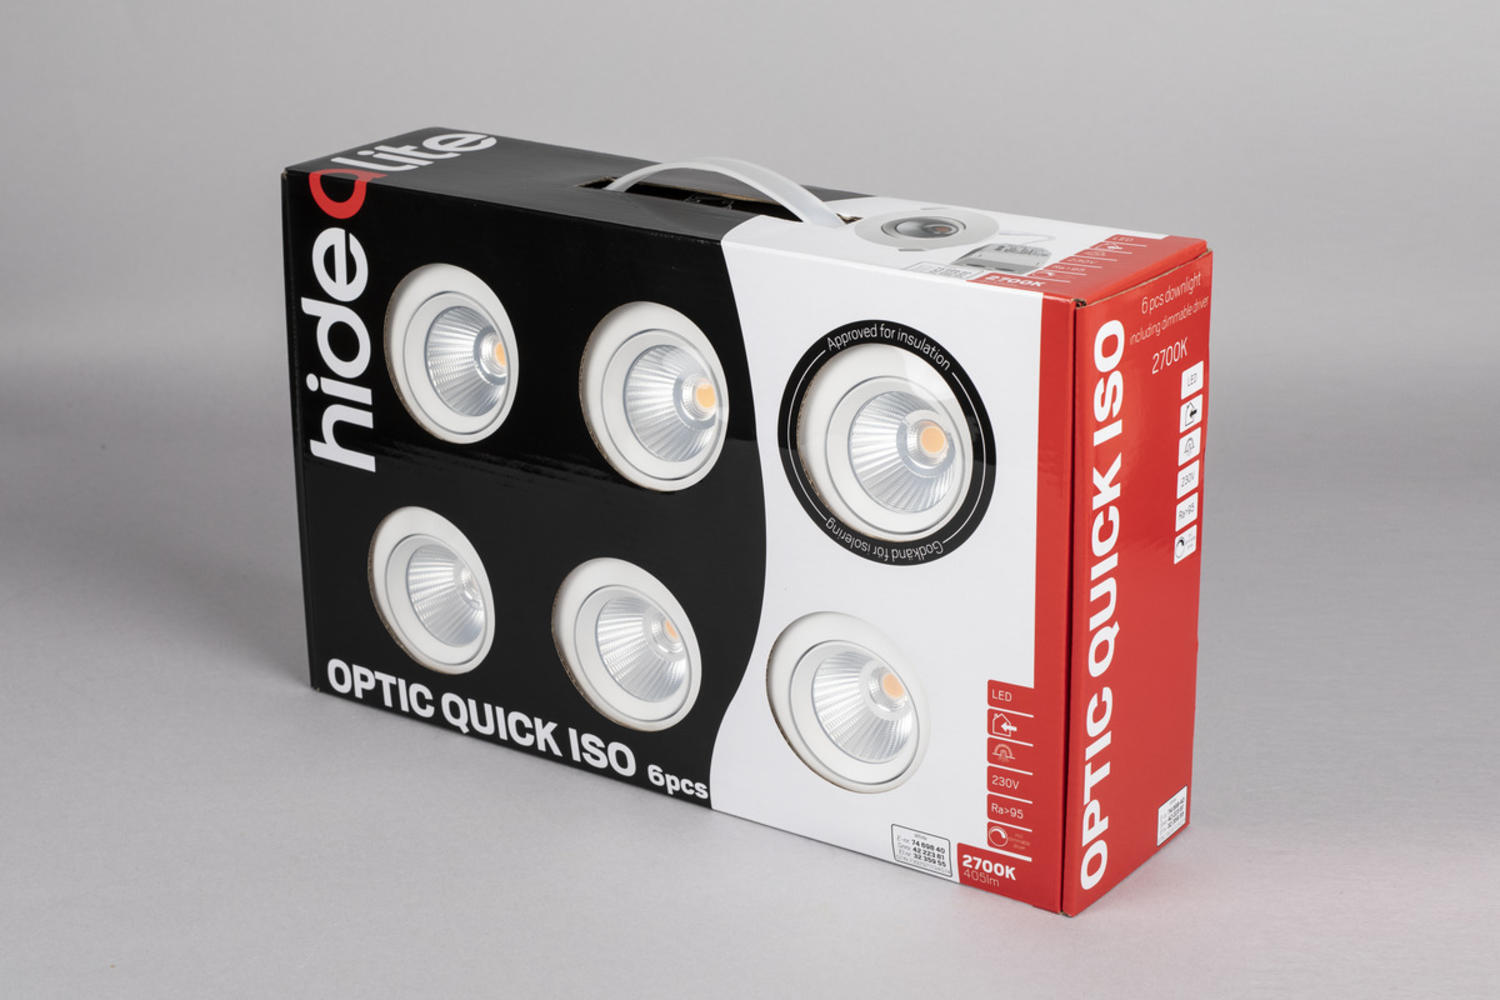 Optic Quick ISO 6-pack Hvid 2700K